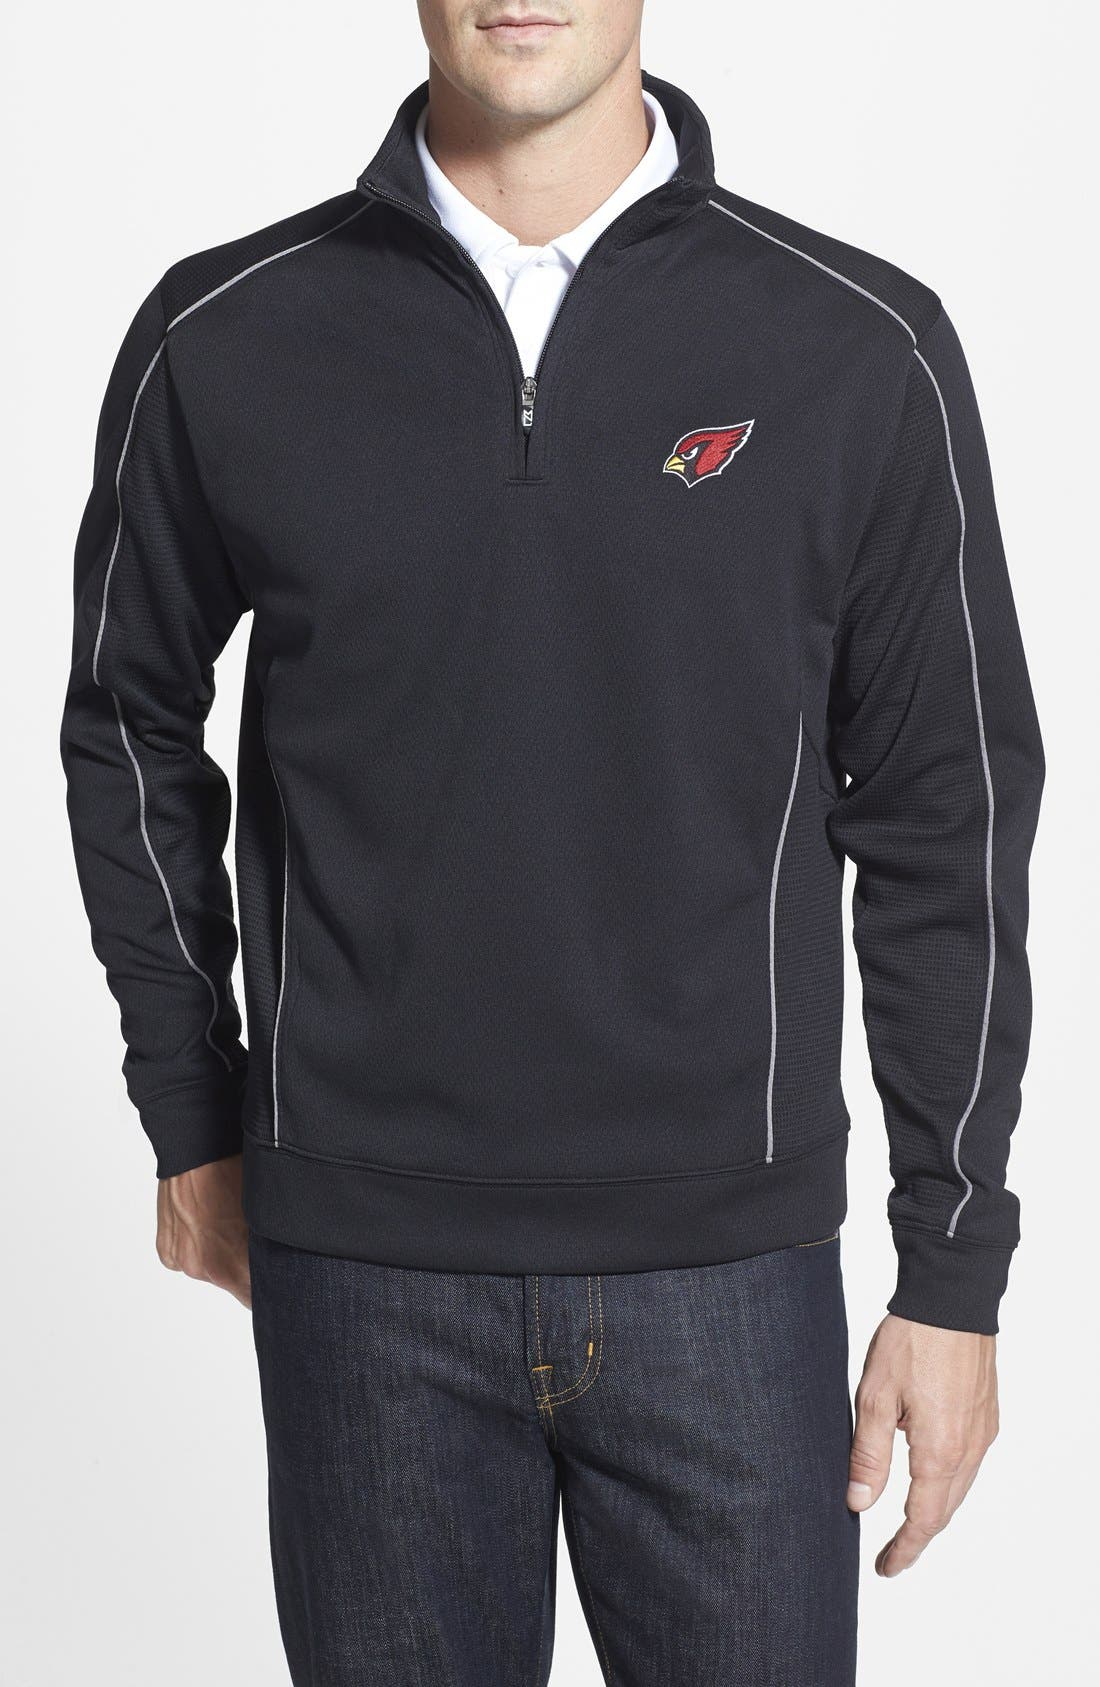 CUTTER & BUCK,                             Arizona Cardinals - Edge DryTec Moisture Wicking Half Zip Pullover,                             Main thumbnail 1, color,                             001